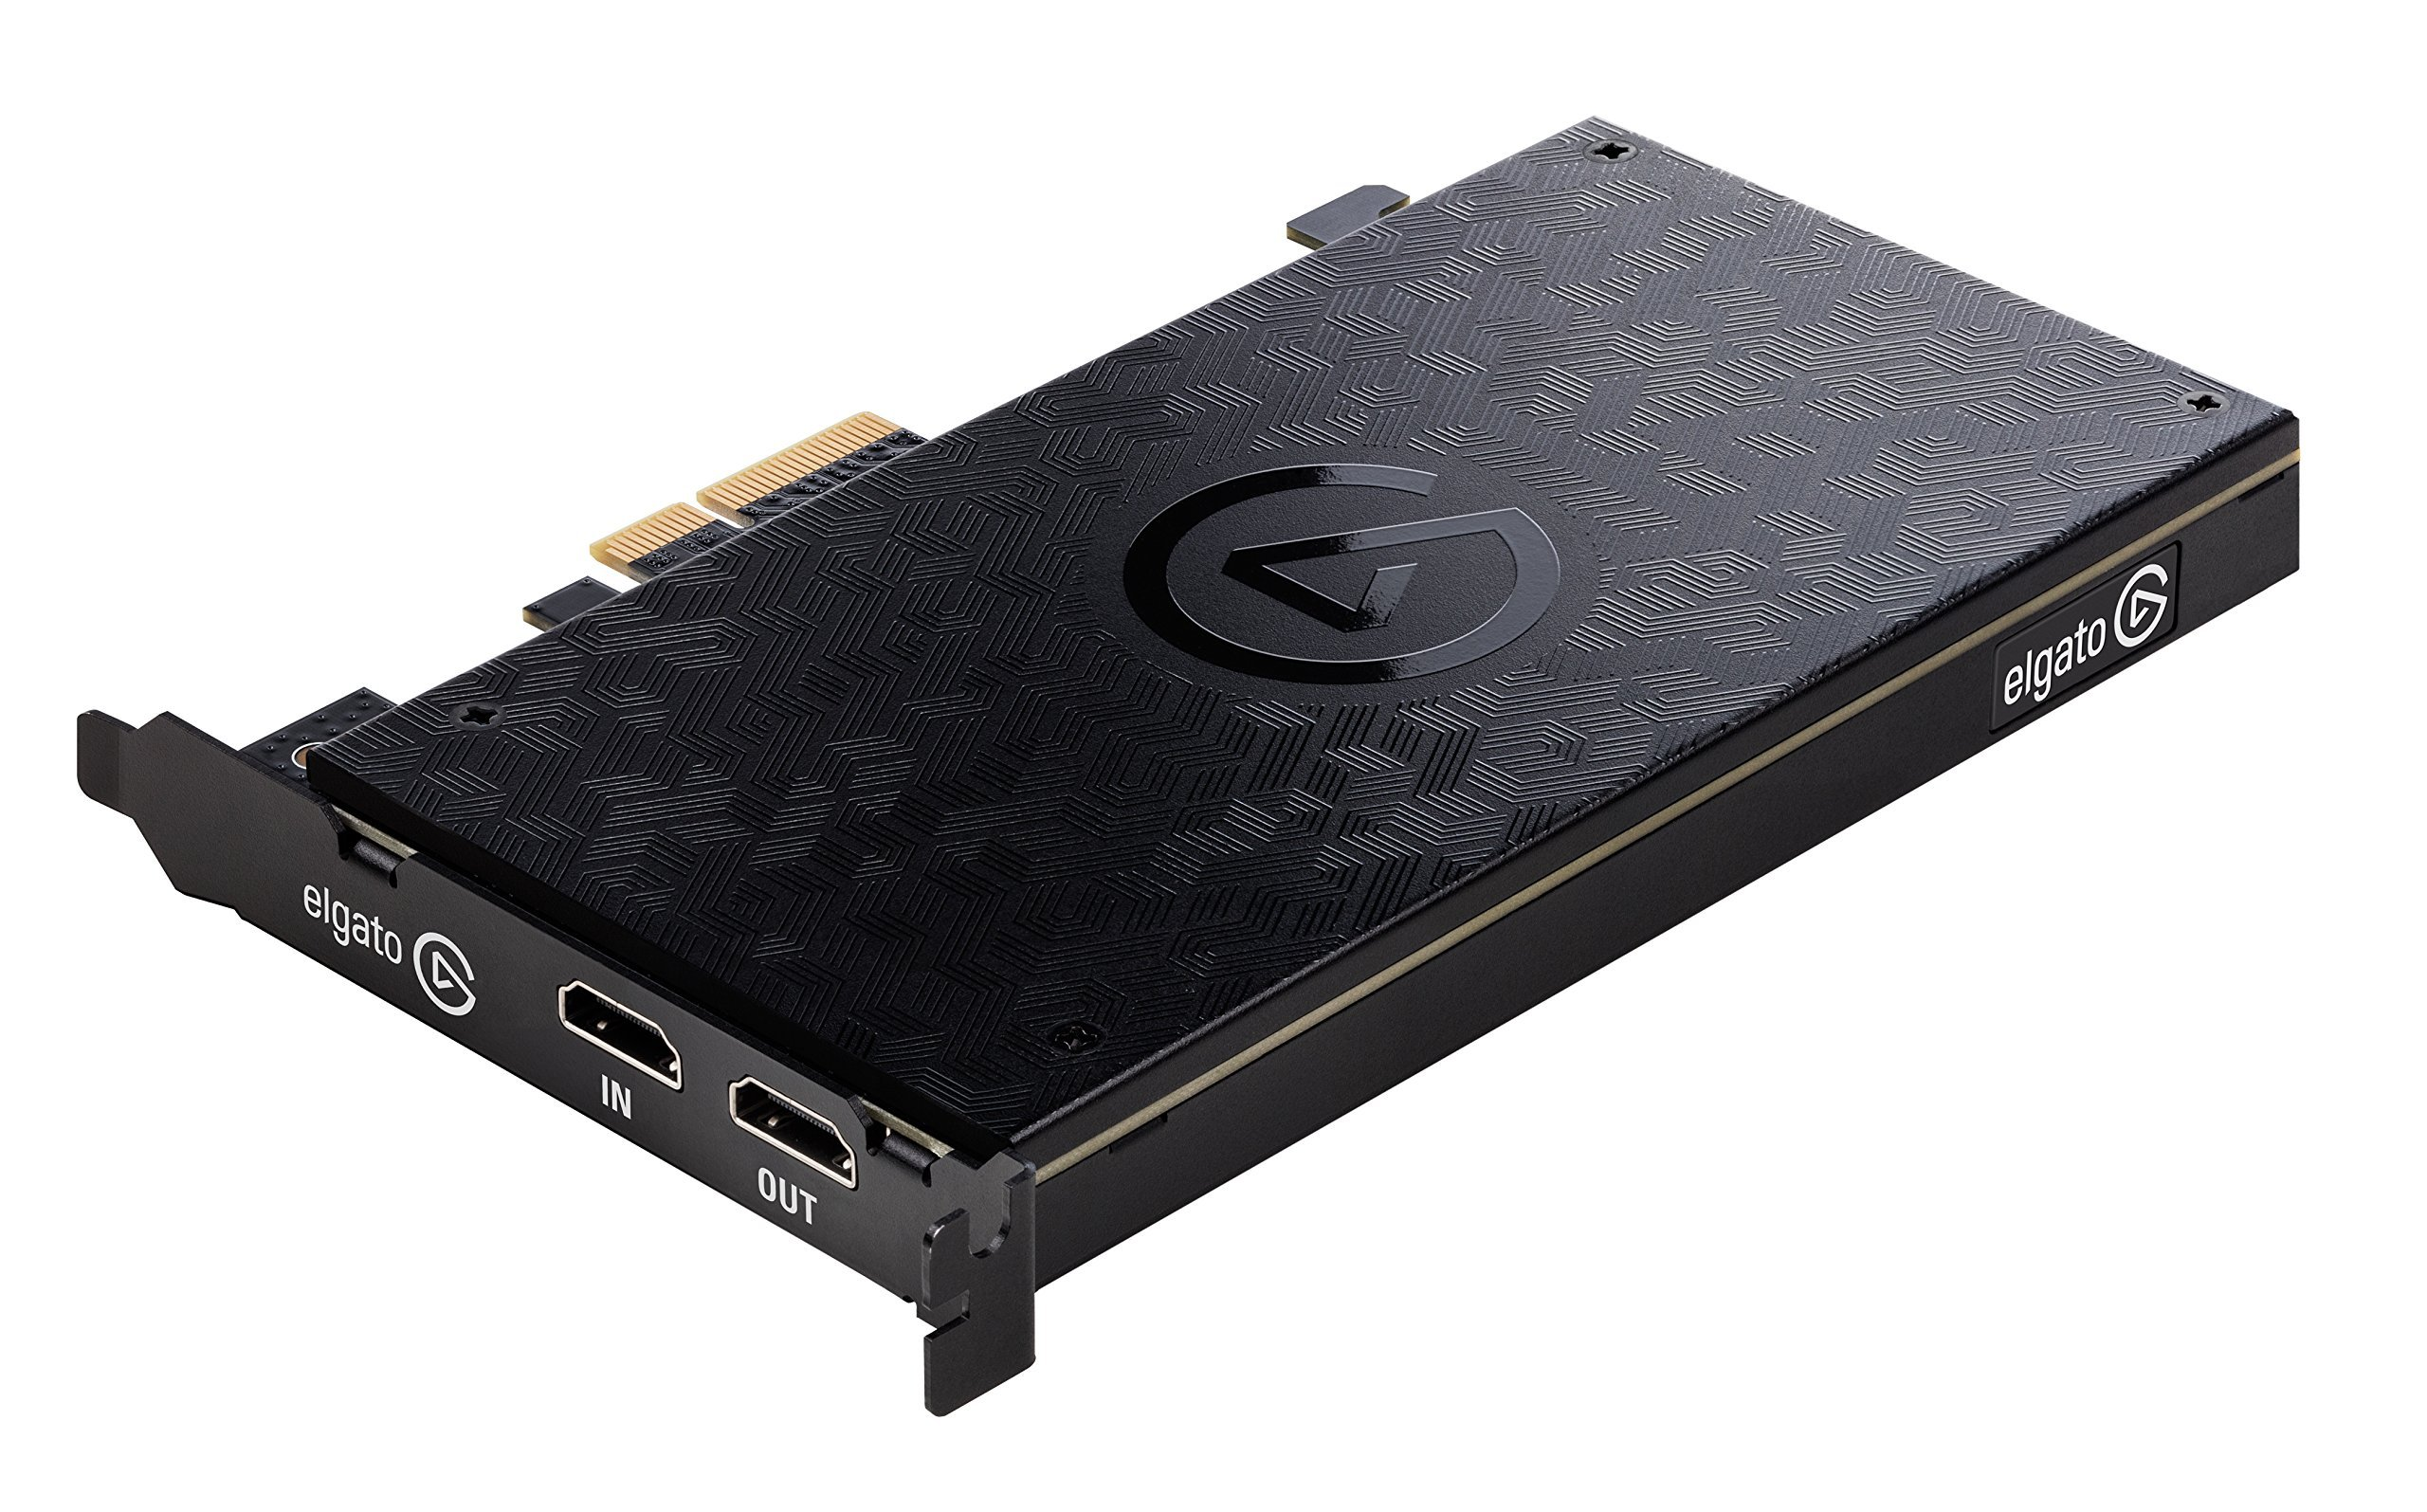 Elgato Game Capture 4K60 Pro - 4K 60fps capture card with ultra-low latency technology for recording PS4 Pro and Xbox One X gameplay, PCIe x4 (Renewed) by Corsair